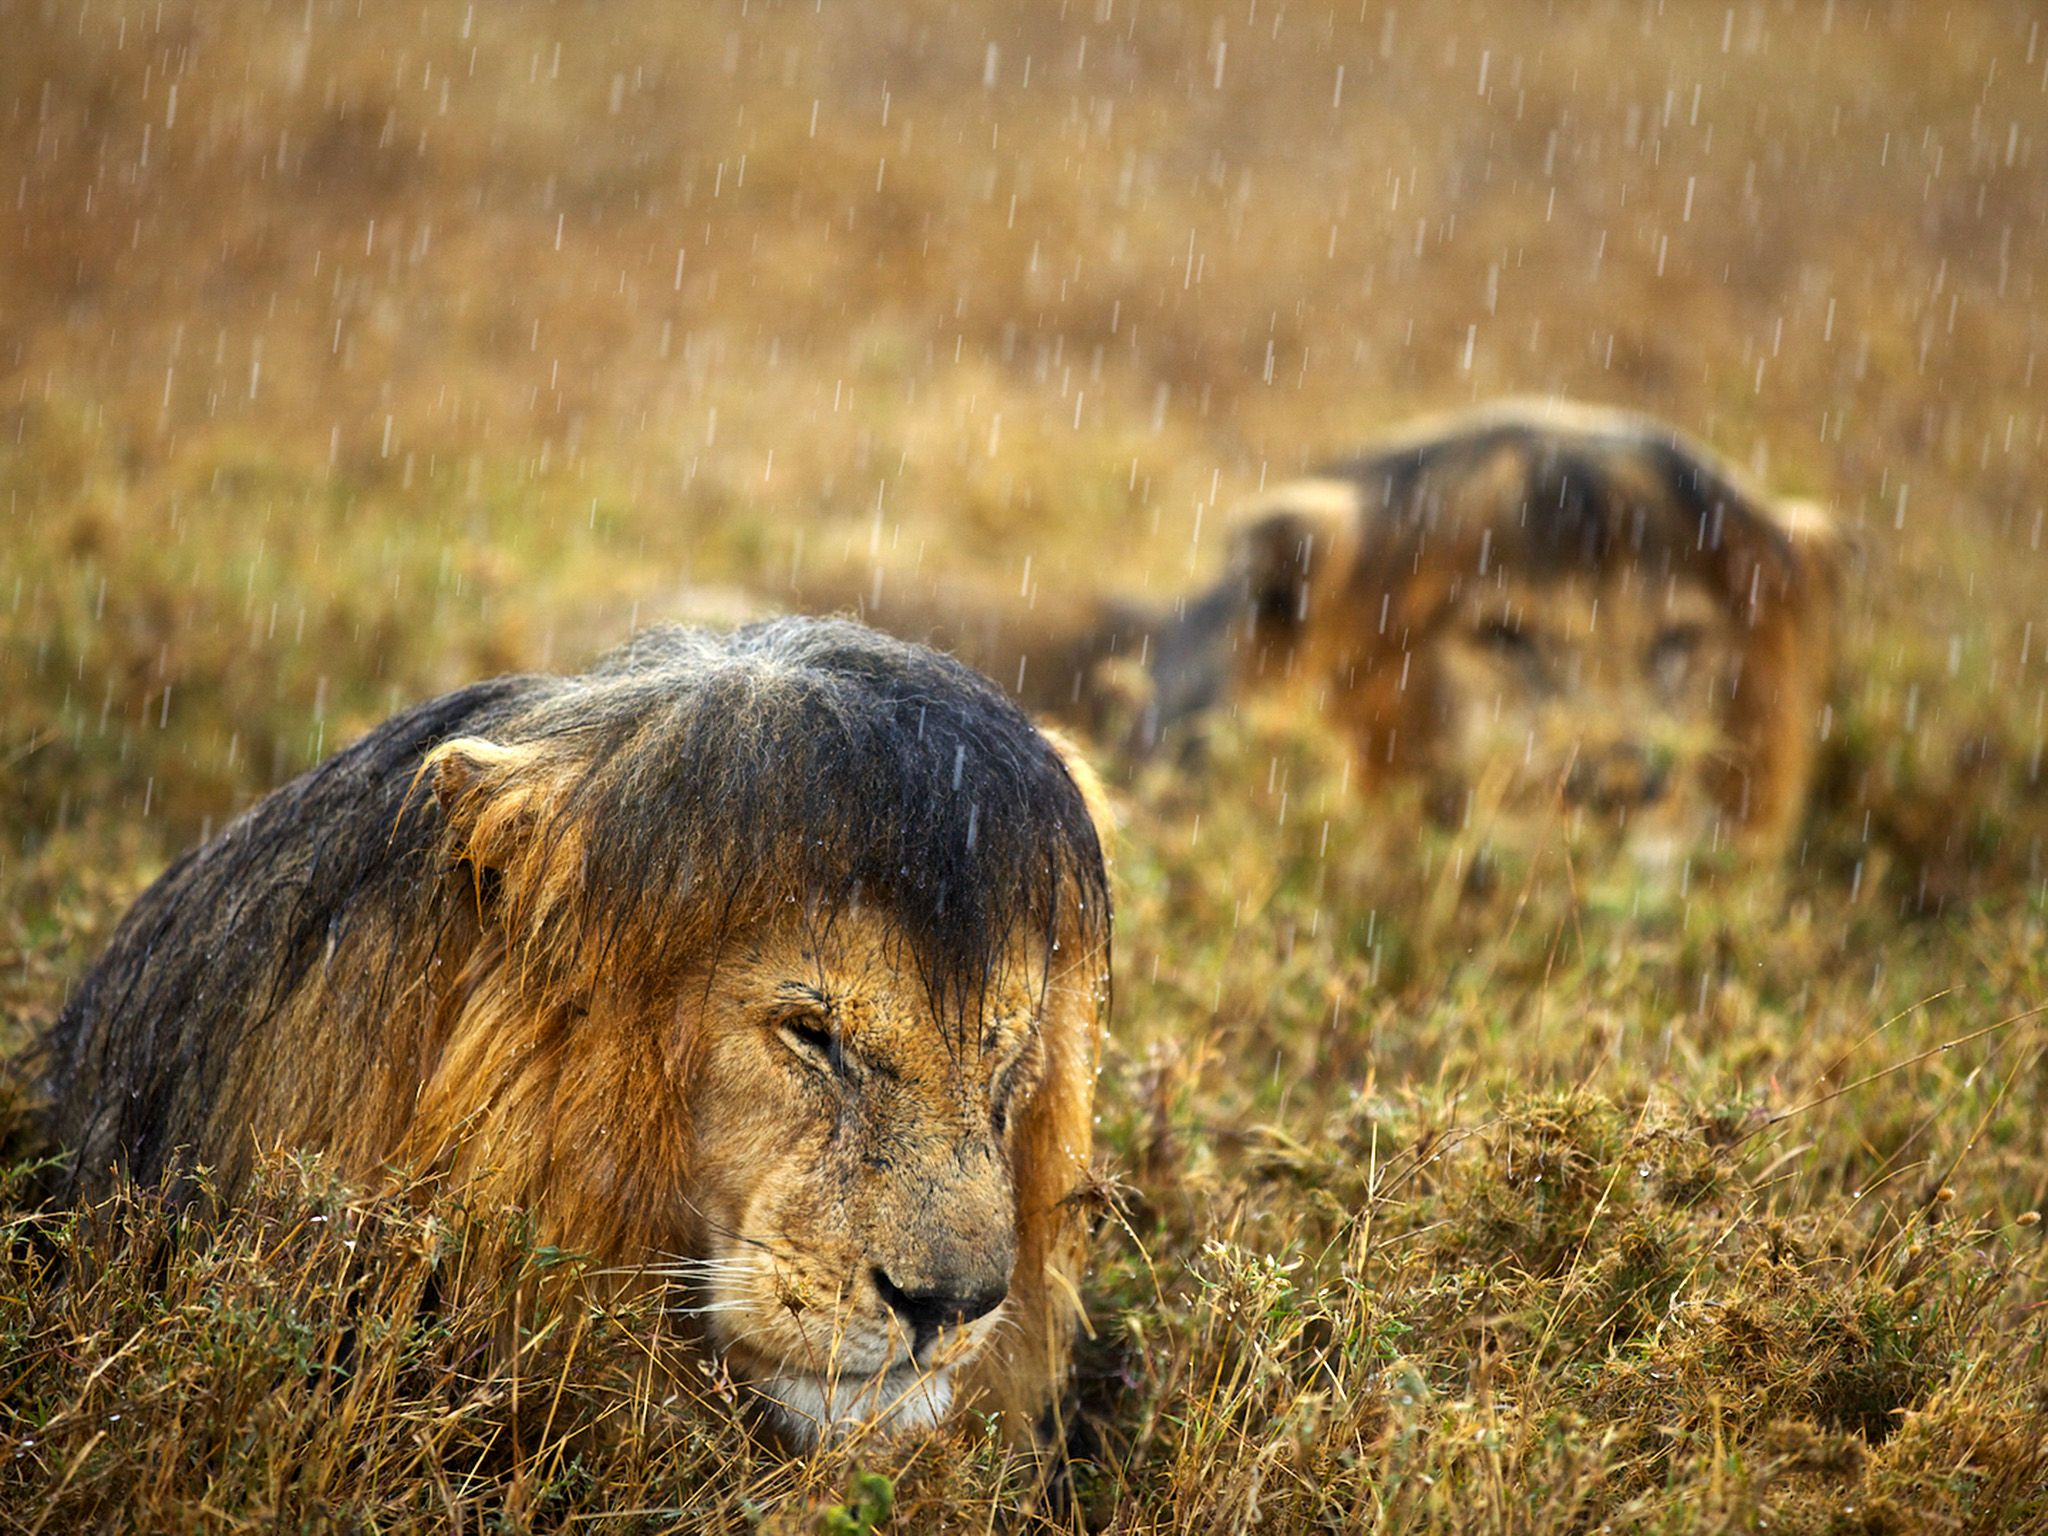 Lions getting soaked by the rain in Serengeti National Park, Tanzania. This image is from Lion Ga... [Photo of the day - February 2015]